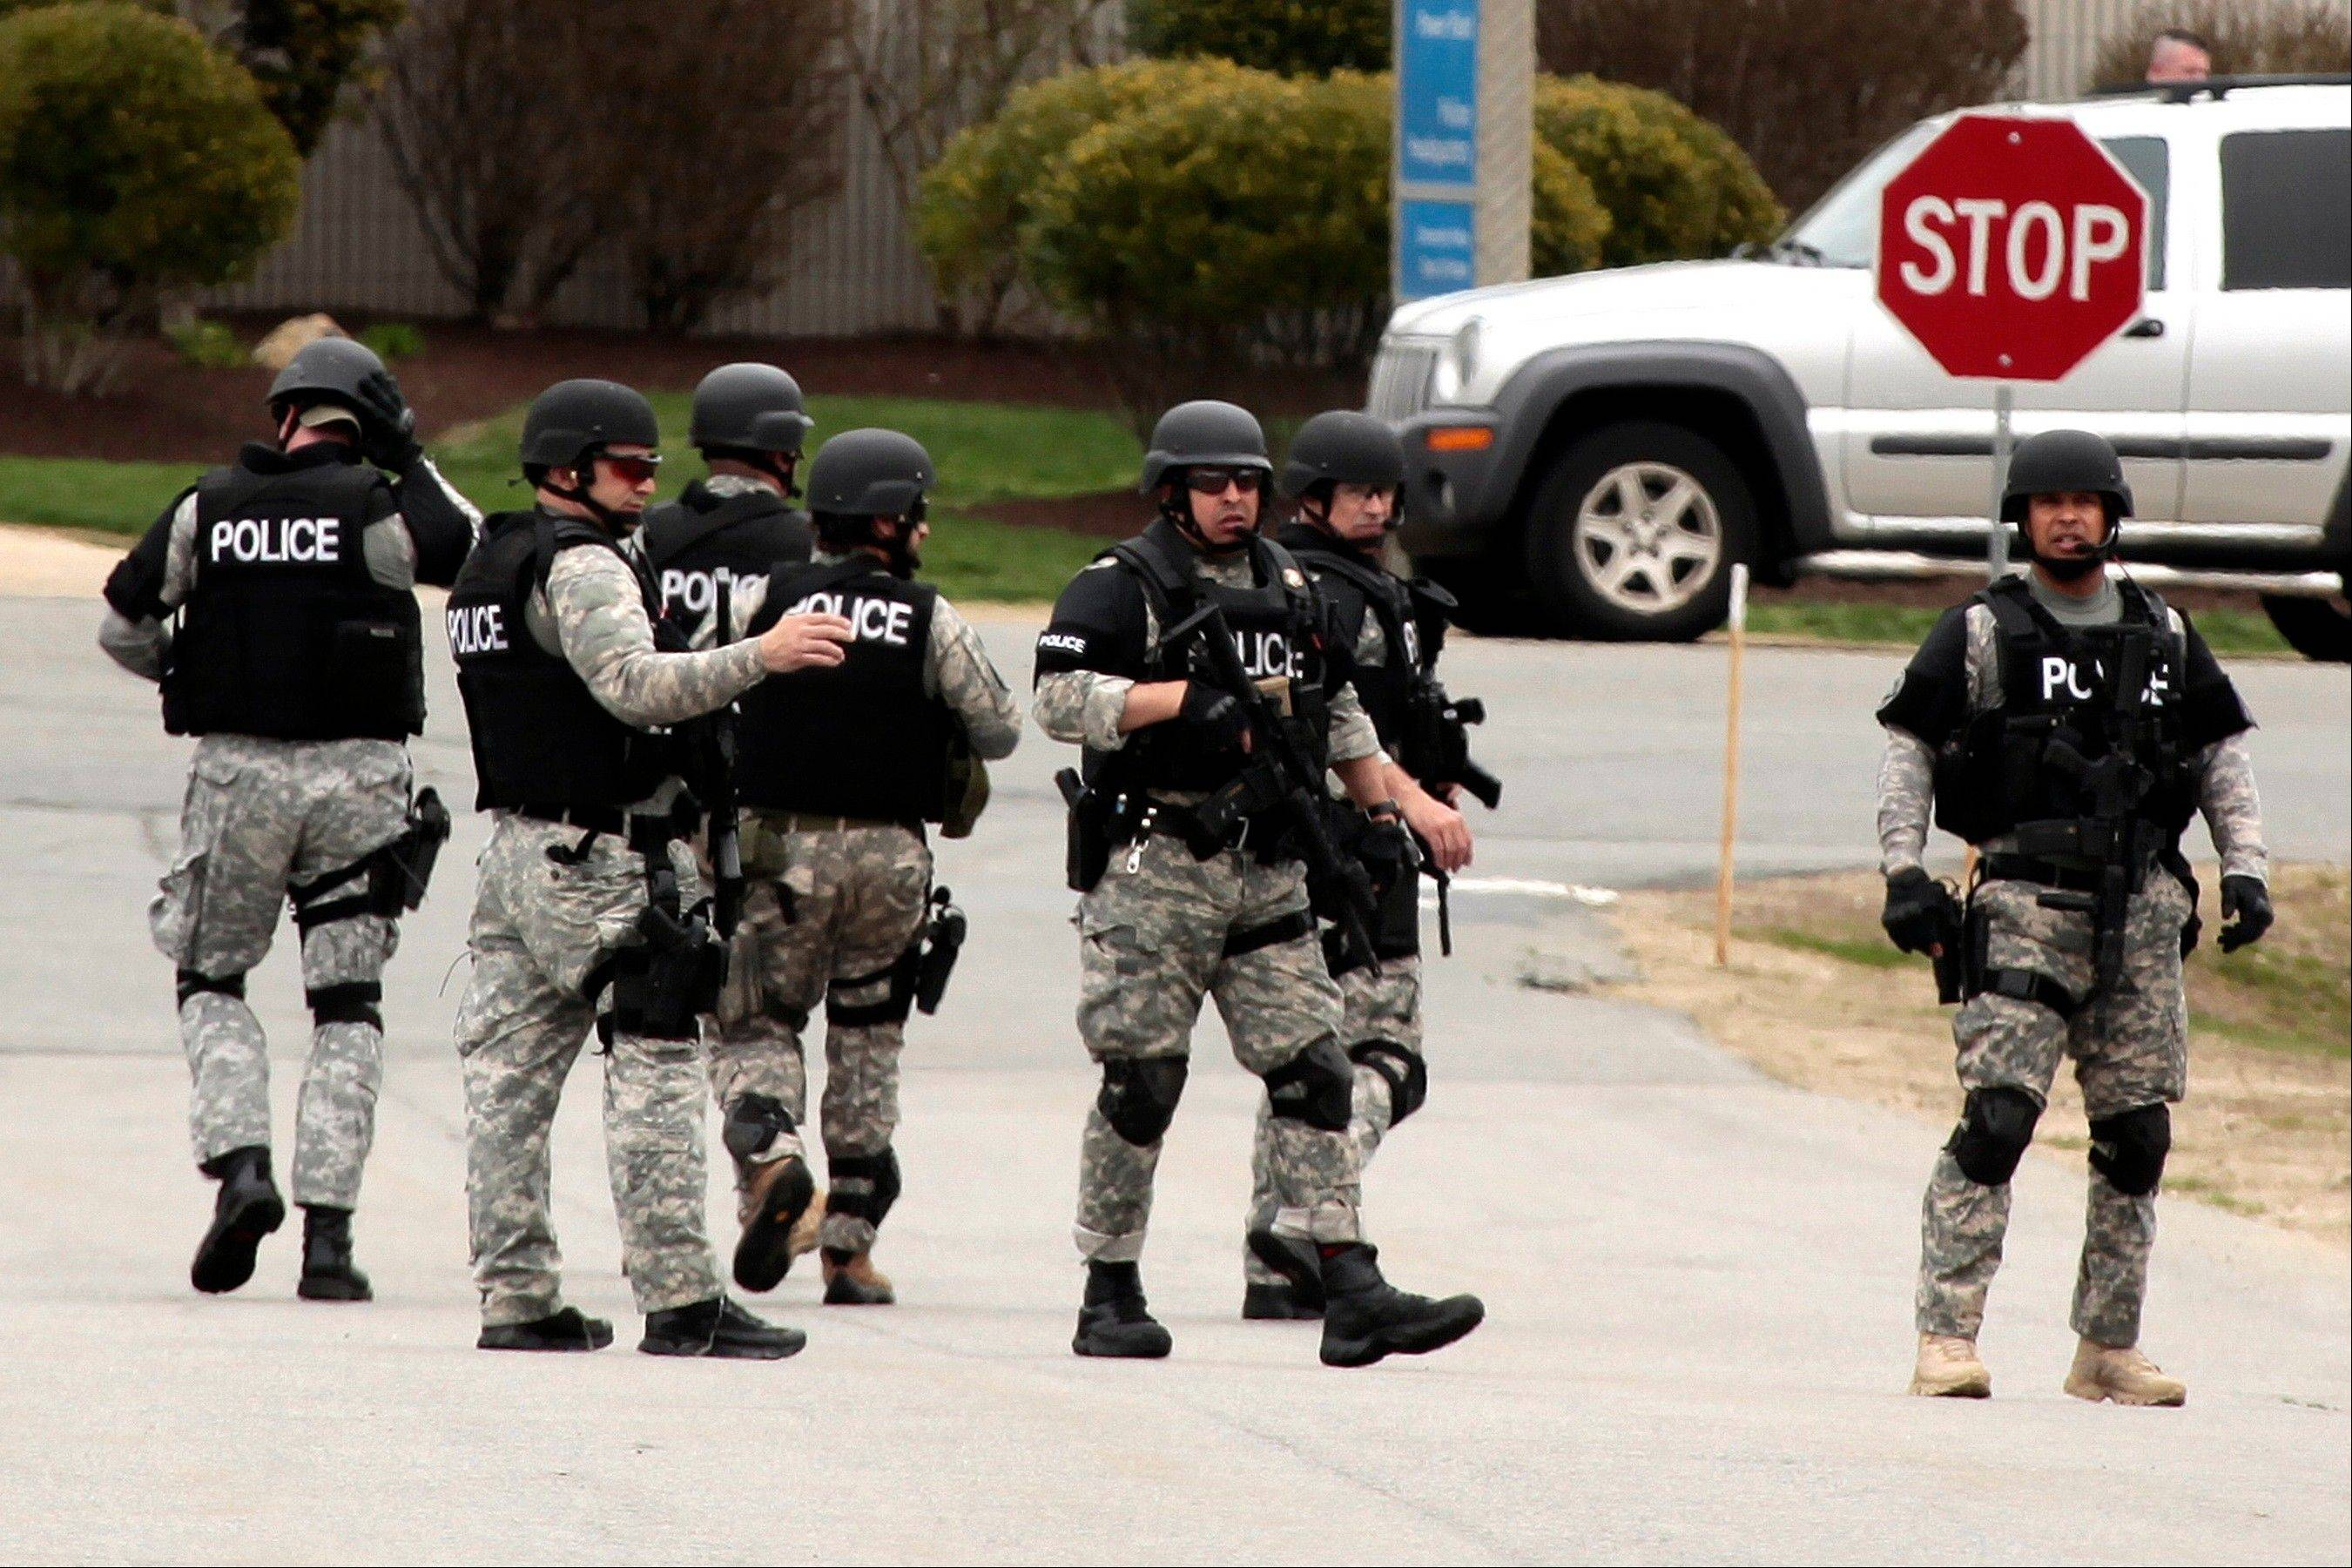 State police move into UMASS Dartmouth on Friday to investigate the dorm room of Dzhokhar Tsarnaev, 19, one of the two suspects wanted for the Boston Marathon bombing.